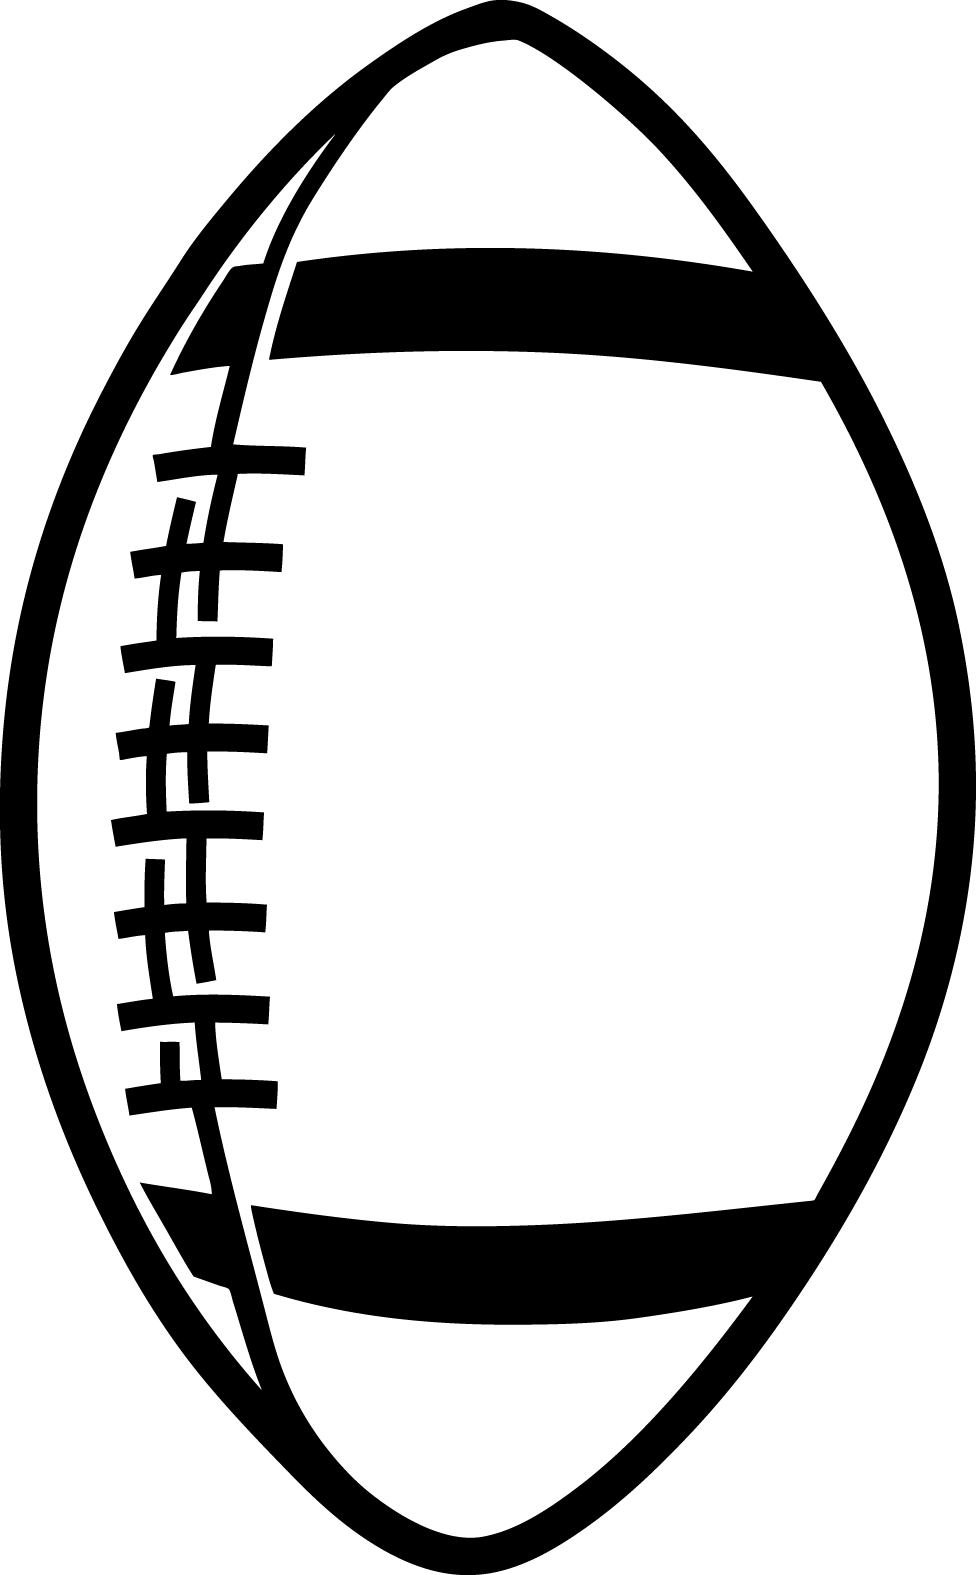 Fall football clipart banner library download Free Football Ring Cliparts, Download Free Clip Art, Free Clip Art ... banner library download